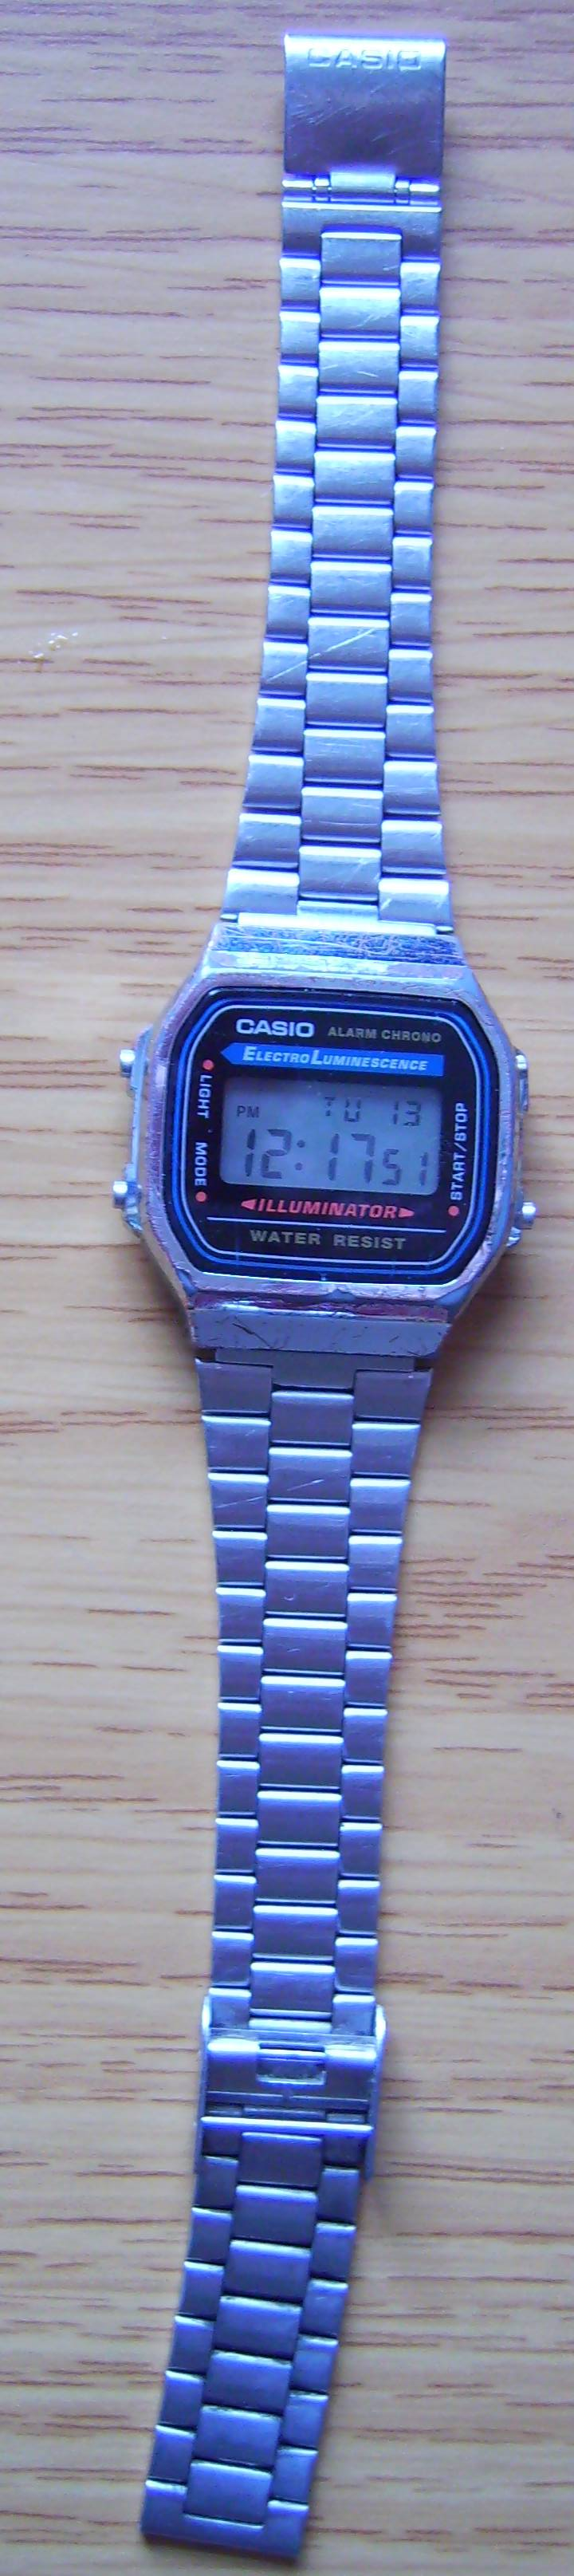 The watch in question (CASIO 1572)